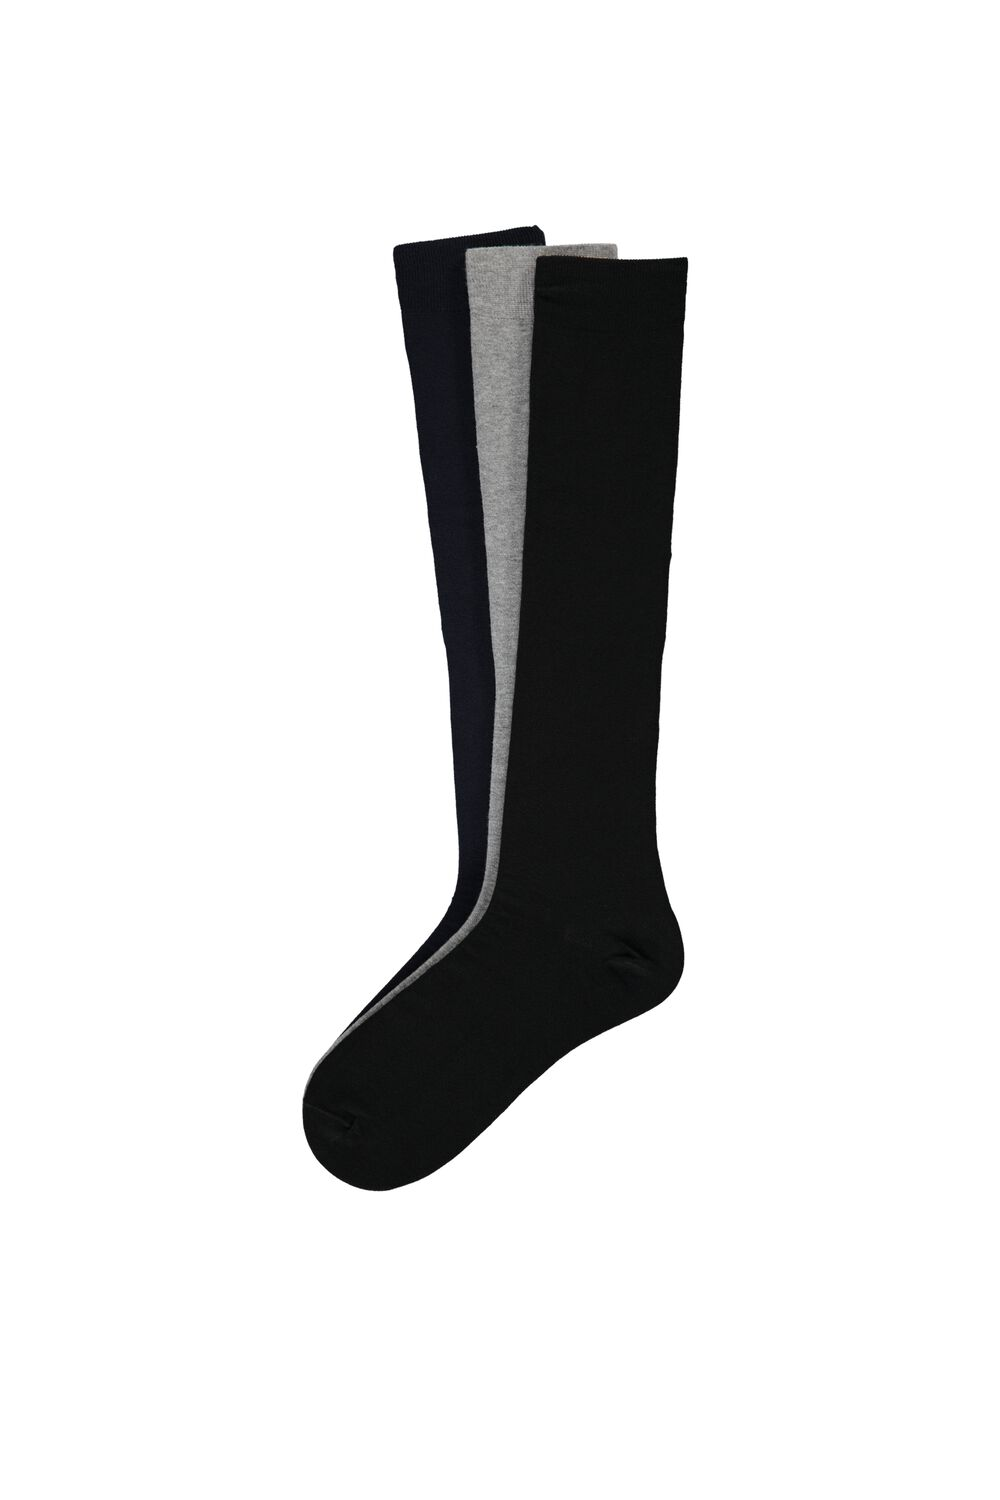 3 X Lightweight Long Cotton Socks